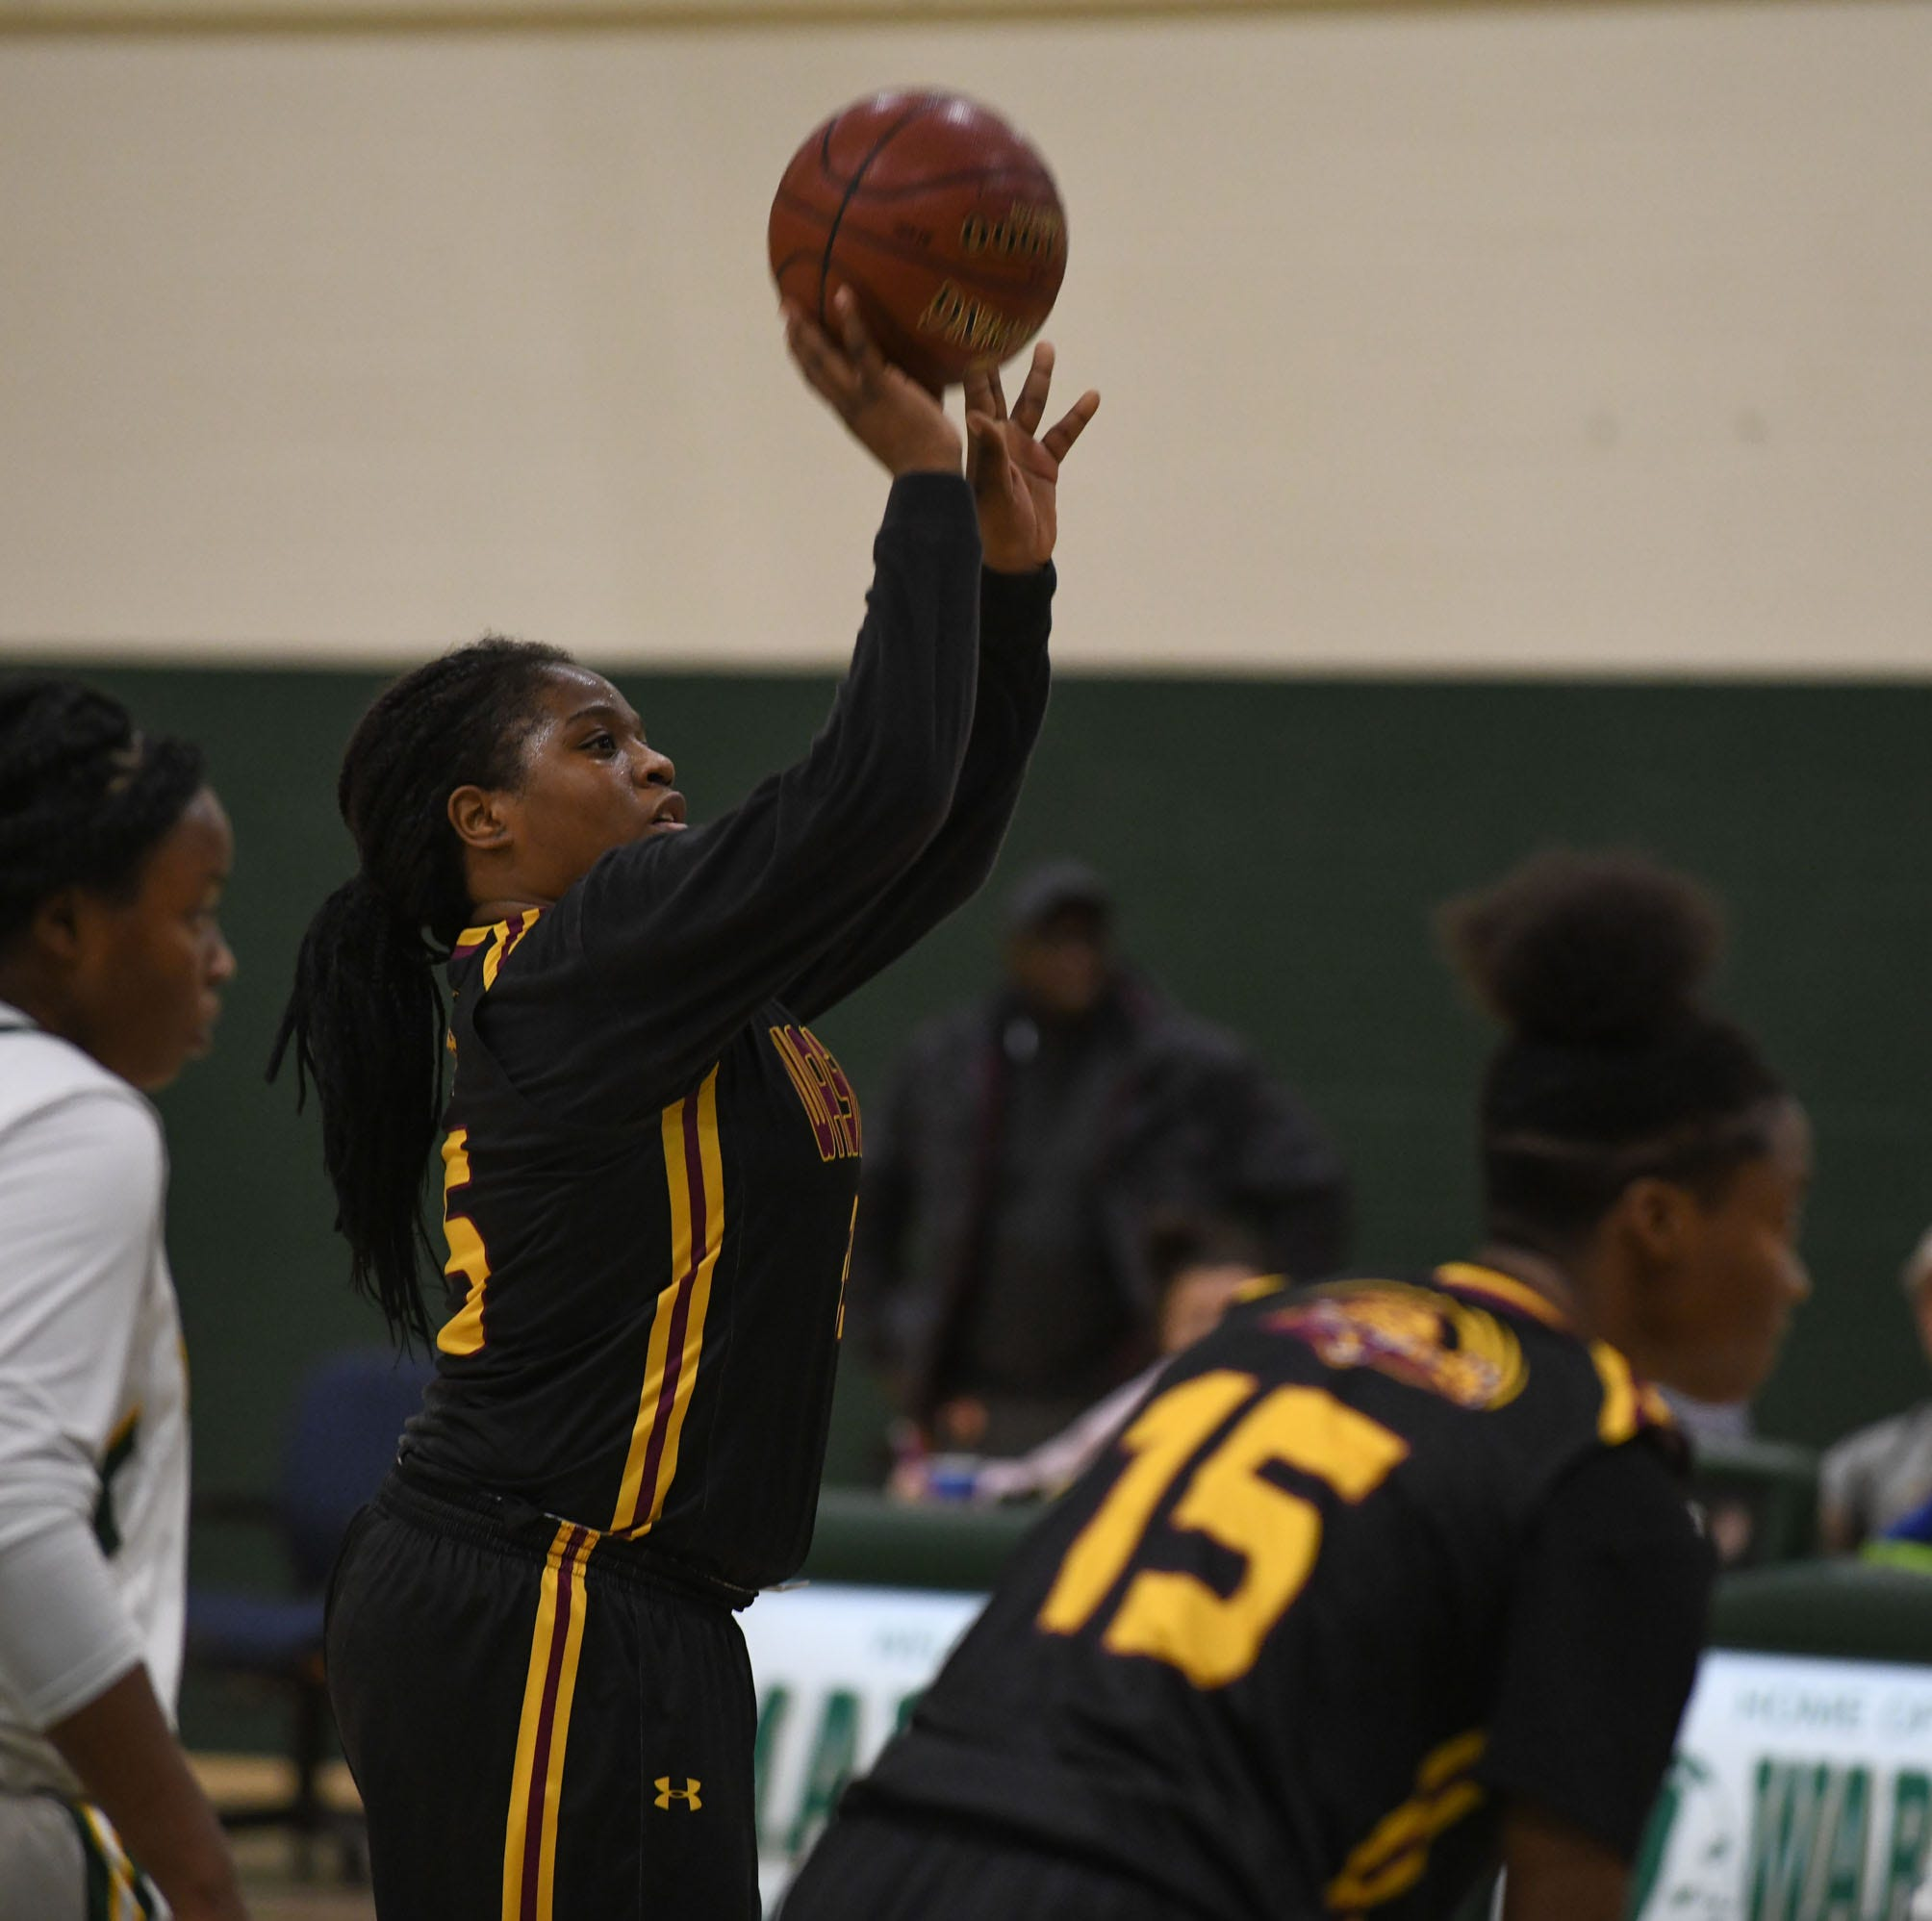 Washington girls basketball player Danasia Roberts closing in on 2,000 career points